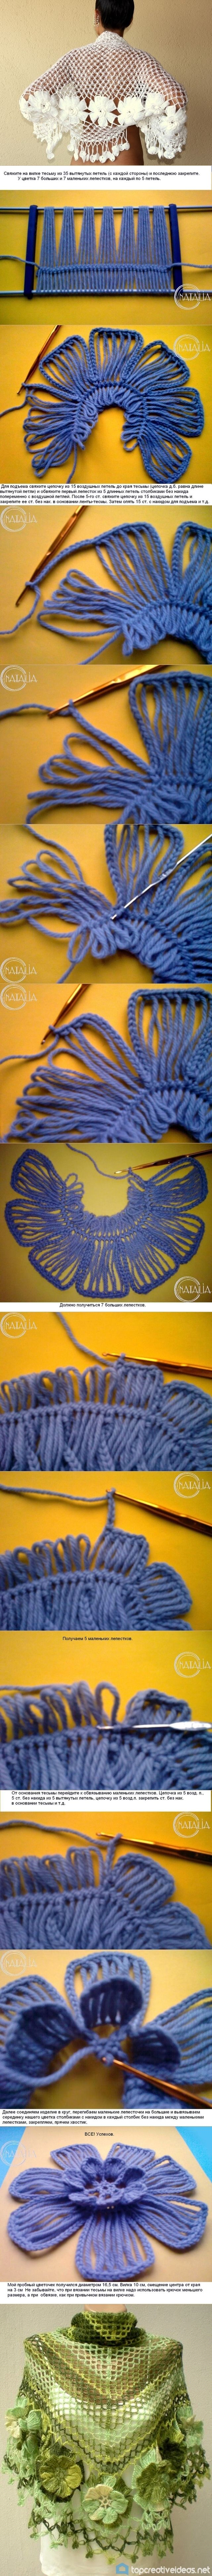 DIY Basic Flower with Crochet Fork and Hook - http://topcreativeideas.net/diy-basic-flower-crochet-fork-hook.html